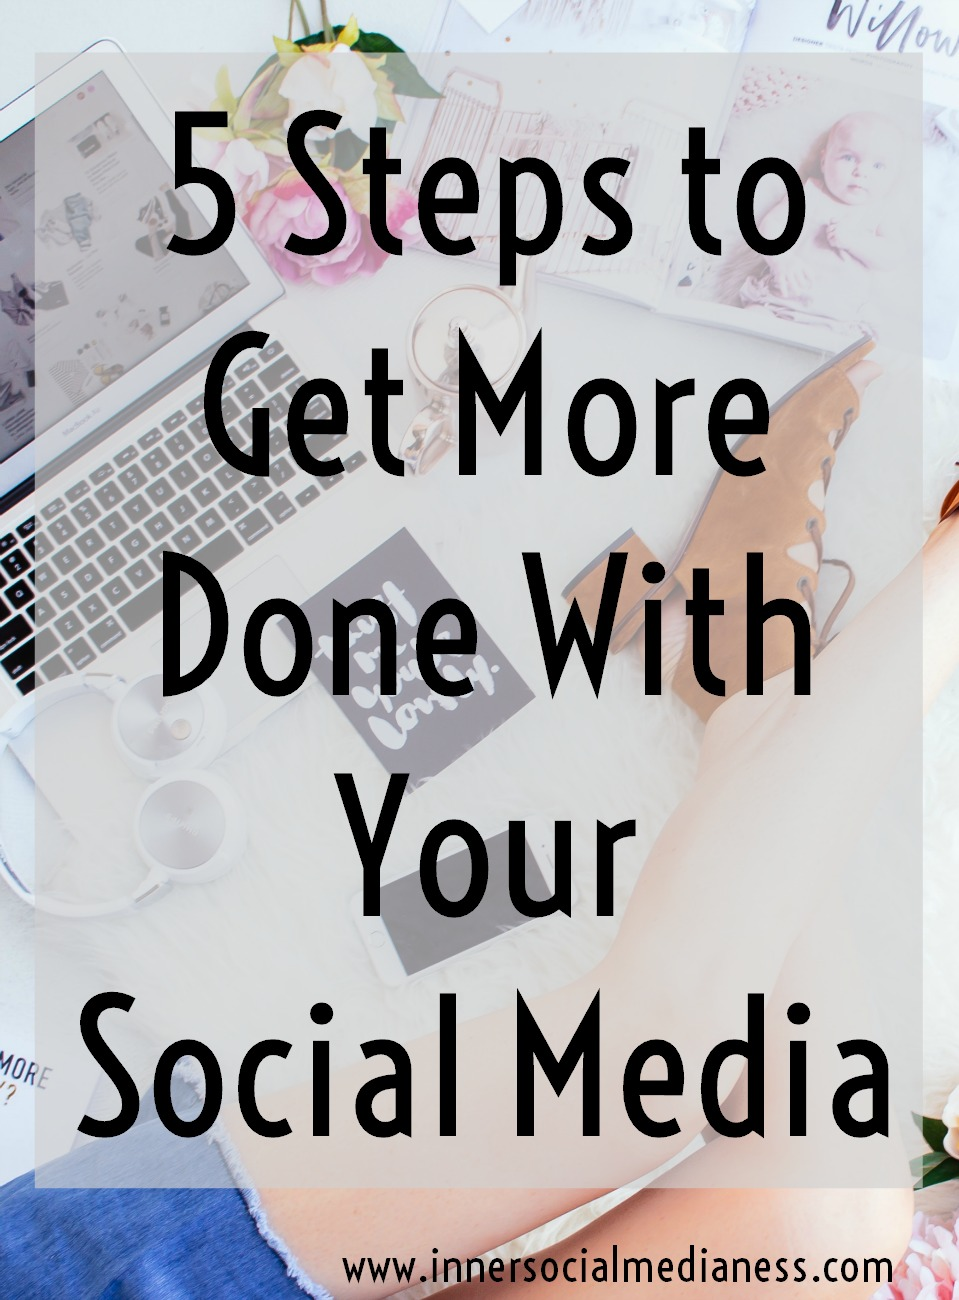 5 Steps to Manage Your Social Media - Get my steps about how the Getting Things Done method can help digital entrepreneurs, bloggers and creative business owners get more done with your social media marketing plans.